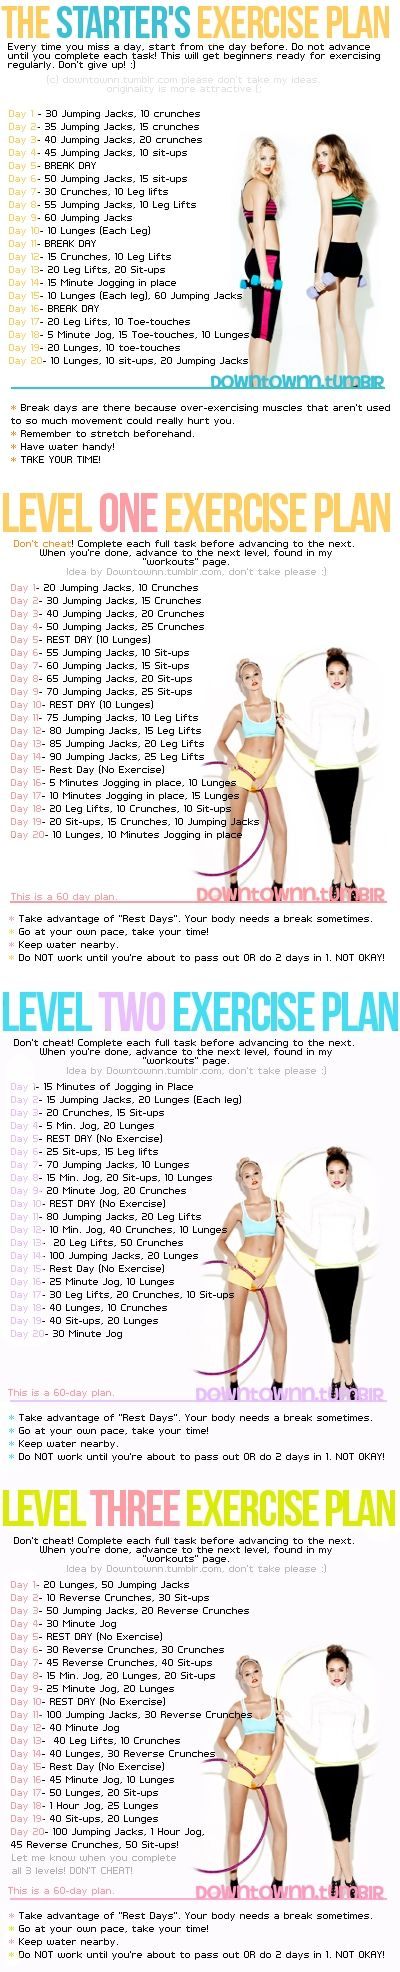 Weight loss motivation and great weight loss tips here - http://perfect-diets.biz/lose-8-pounds-in-2-weeks/ #weightlossrecipes